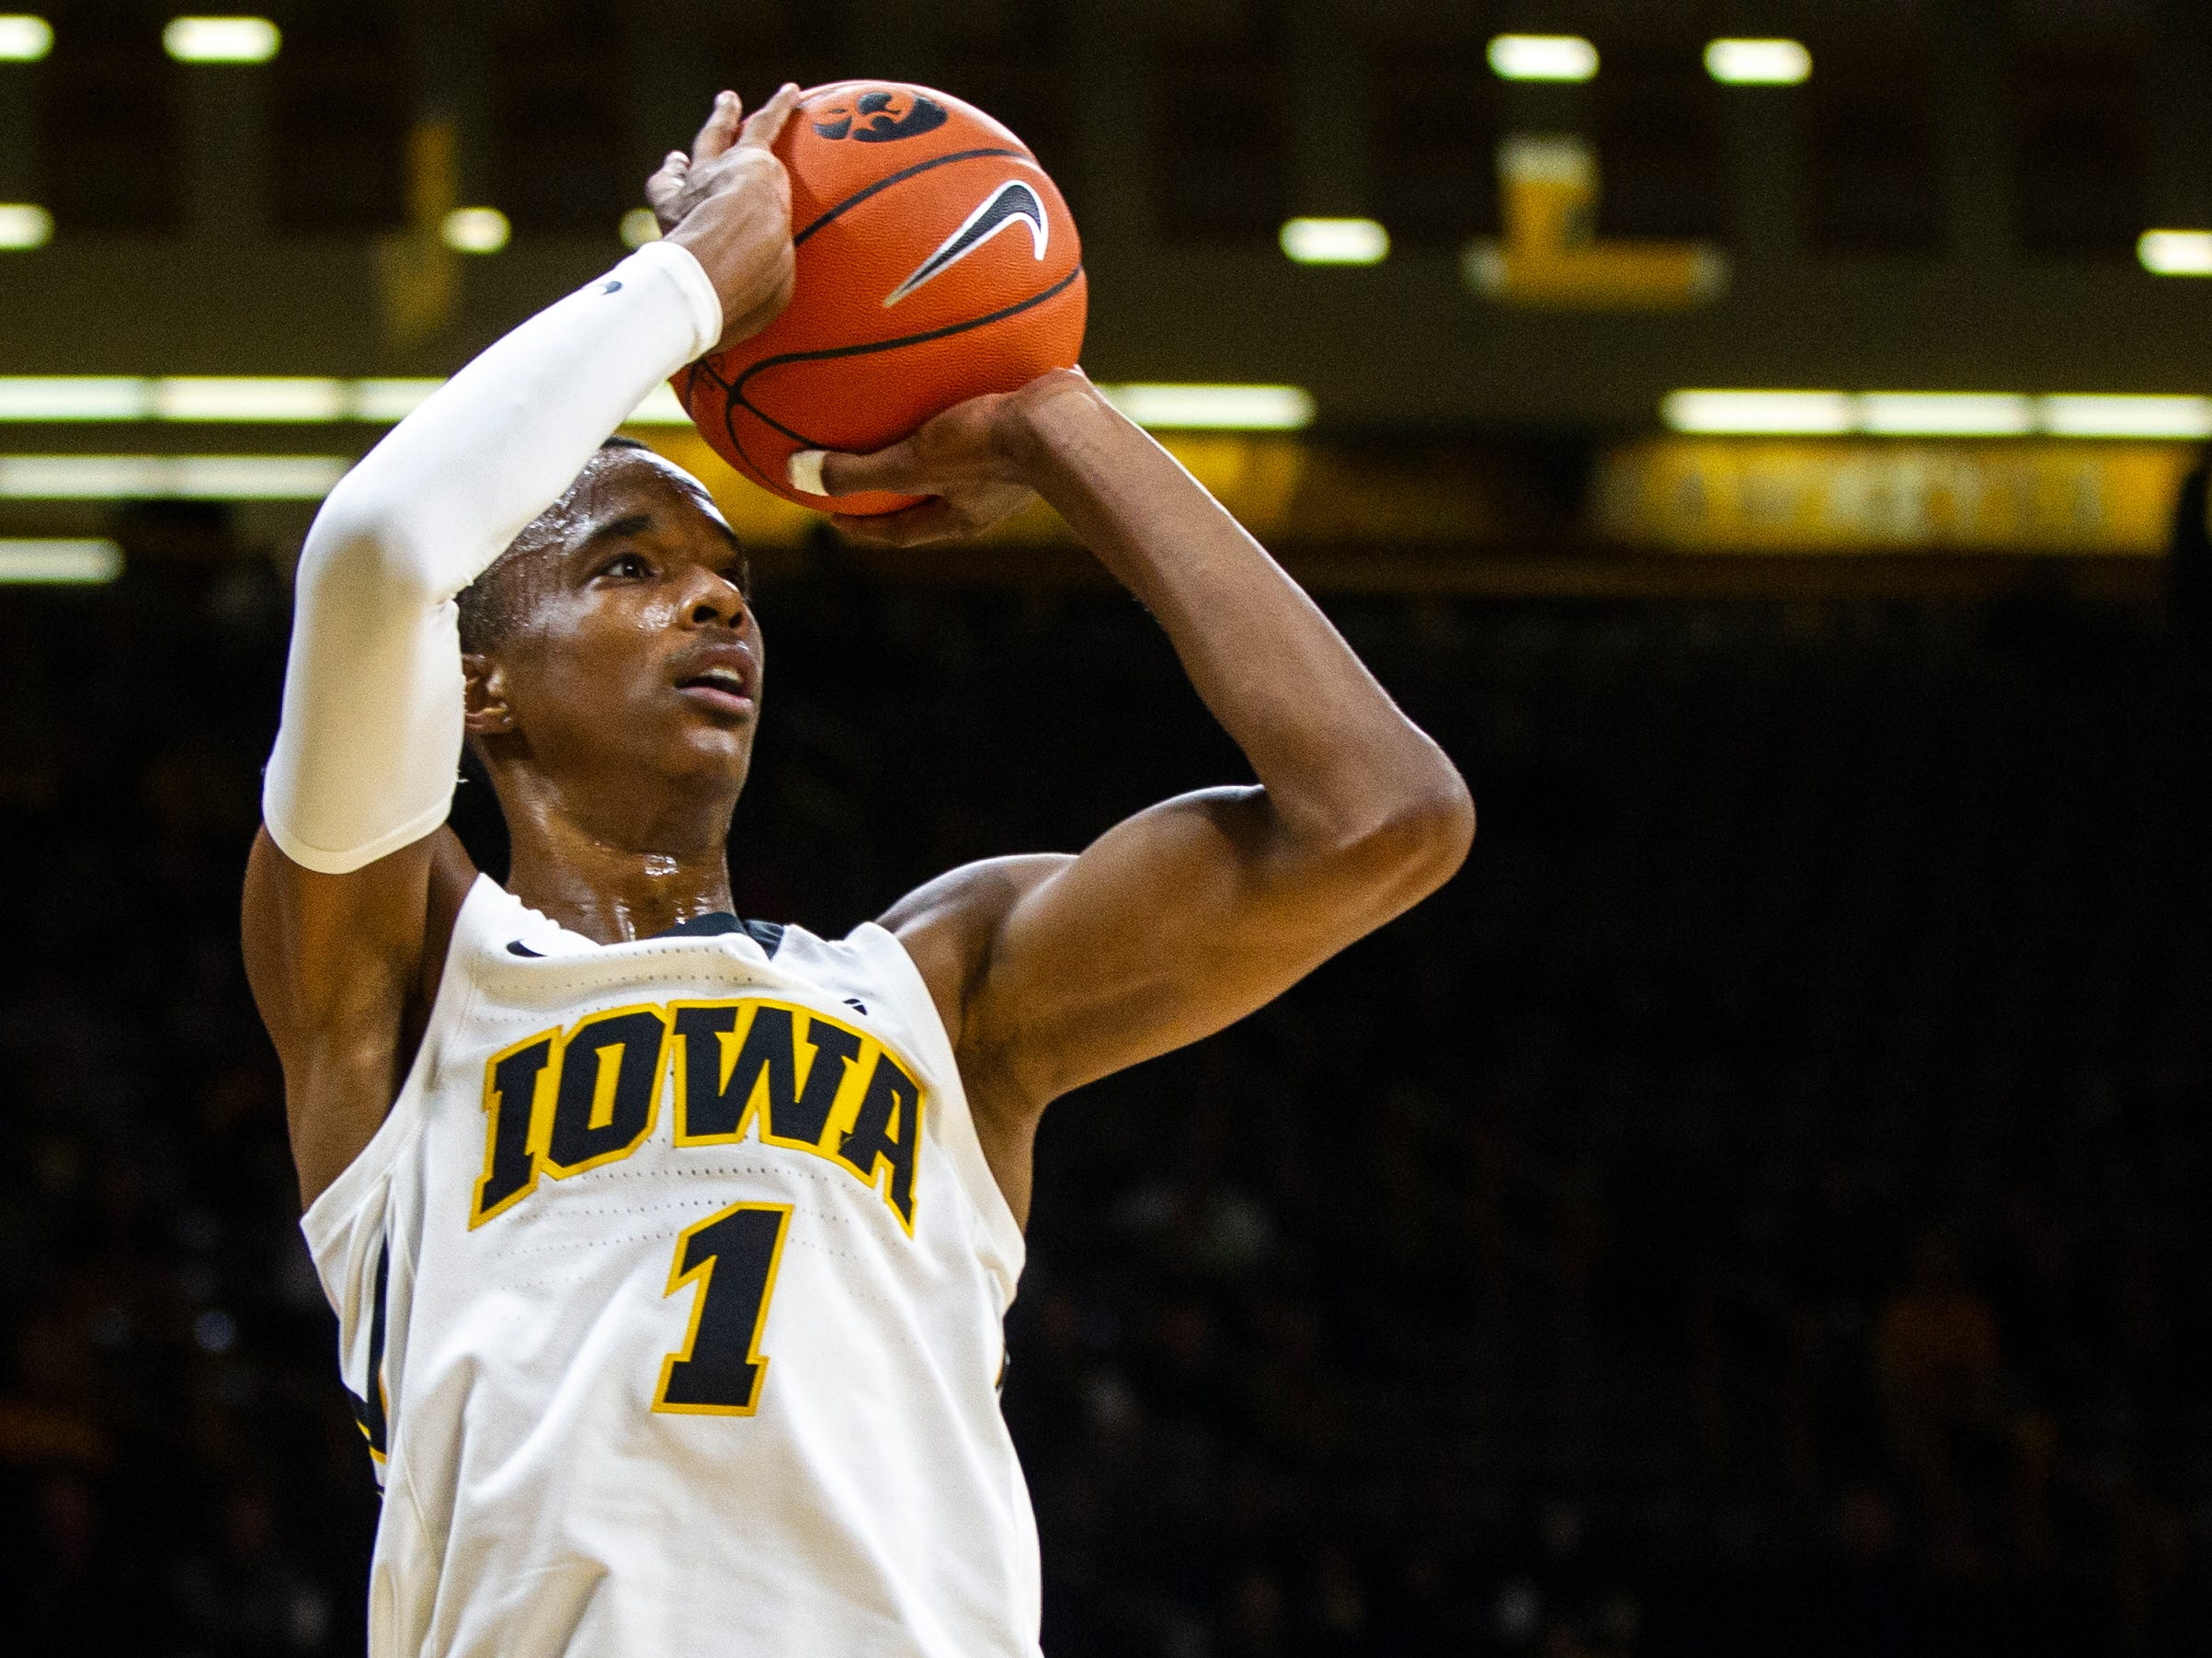 Iowa guard Maishe Dailey (1) shoots during a men's basketball exhibition game on Sunday, Nov. 4, 2018, at Carver-Hawkeye Arena in Iowa City.